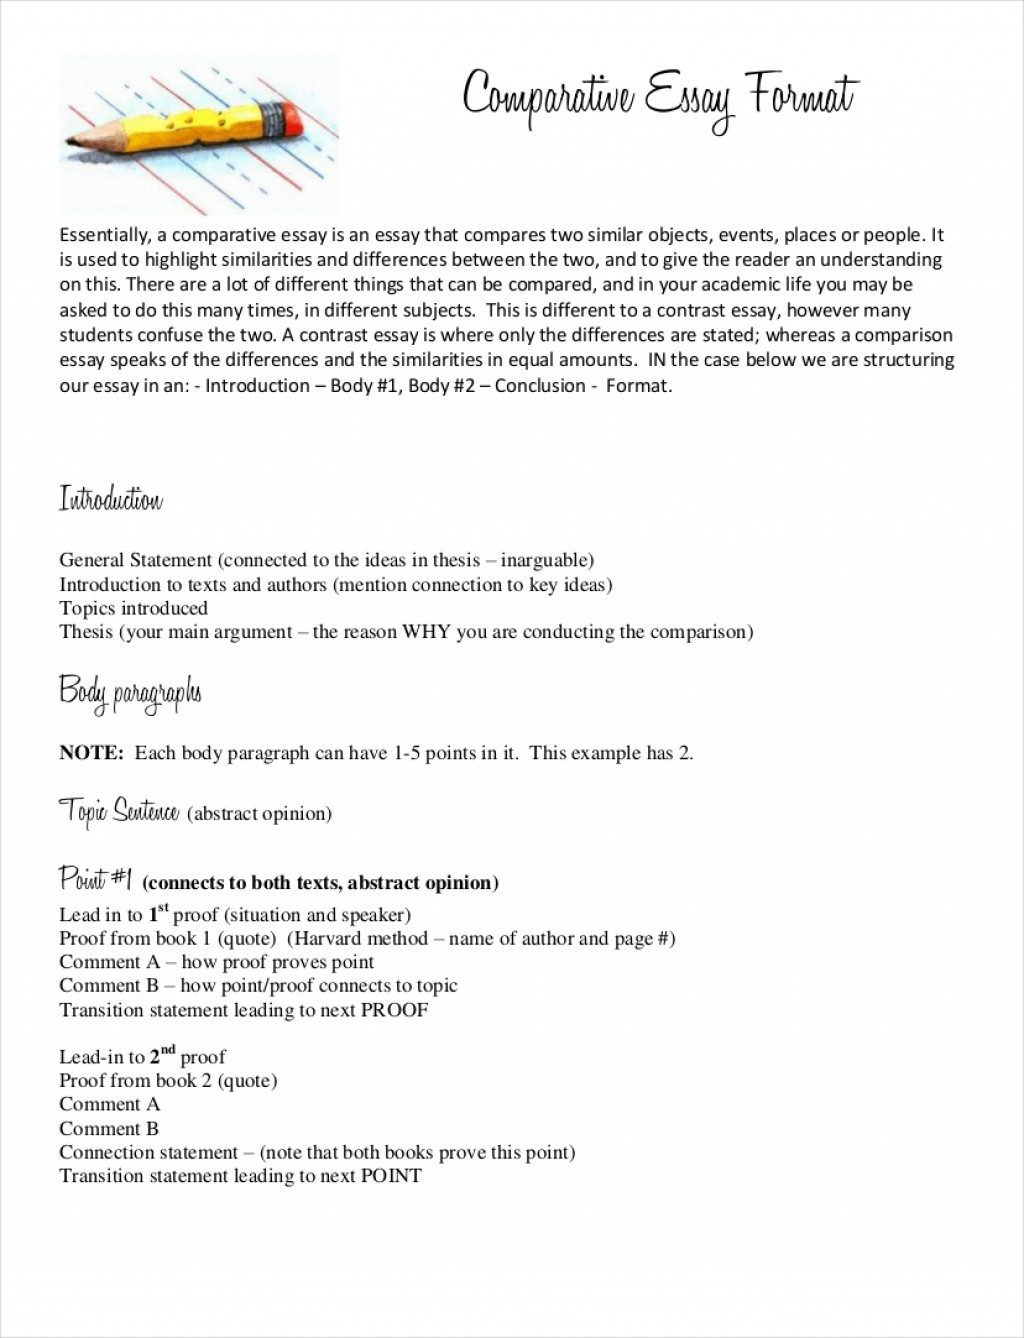 006 Comparative Essay Example Good Cover Letter Samples Sample Pdf Free Format Download W Unique Writing Rubric Structure Large